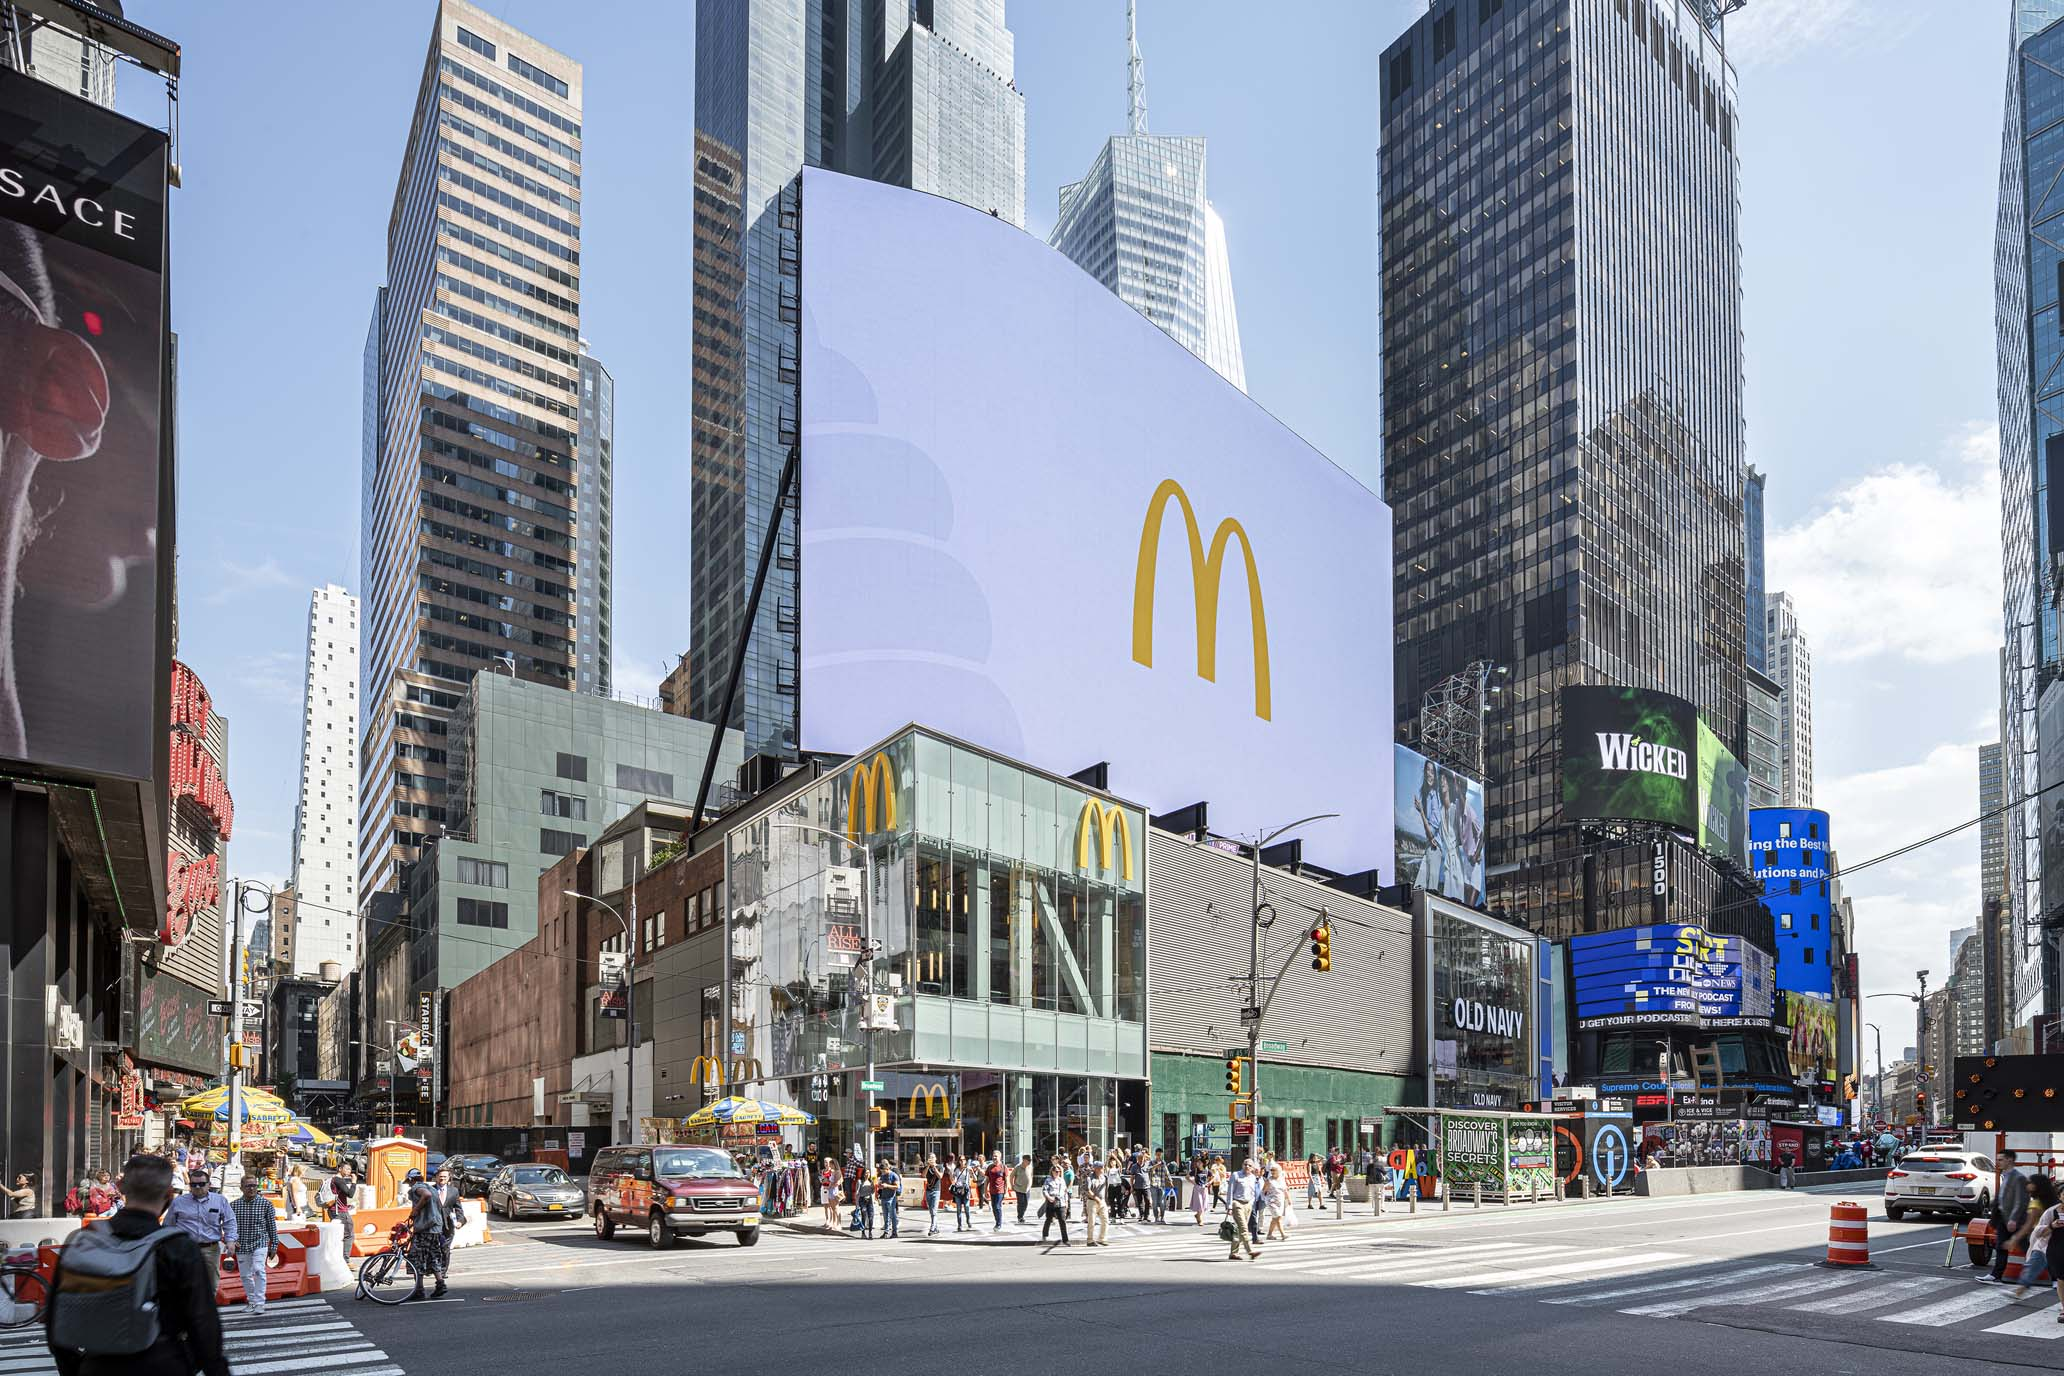 MCD_Times Square_Landini Associates_Andrew Meredith_1618